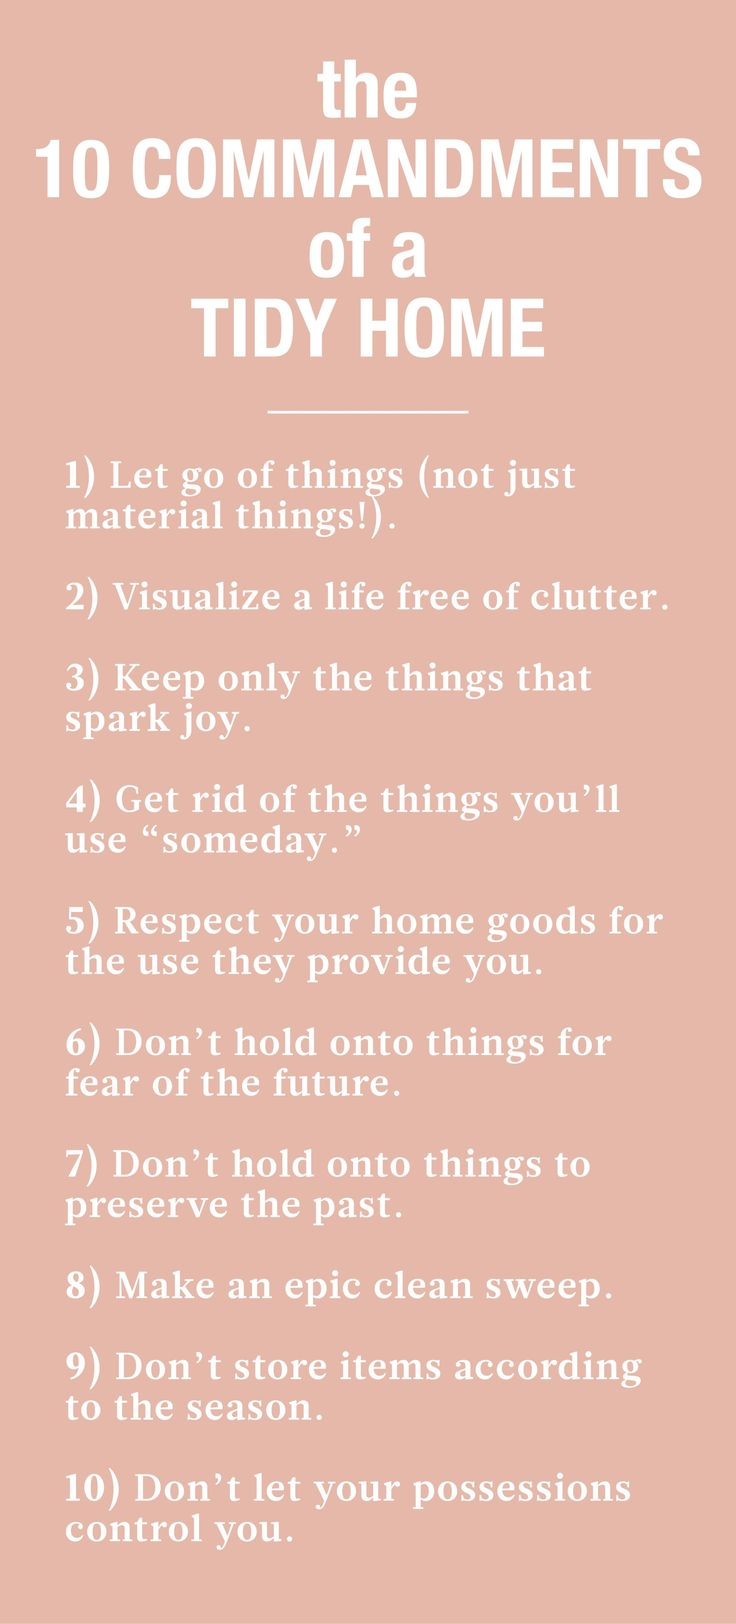 "The 10 Commandments of a Tidy Home | Martha Stewart Living - Spring cleaning on the mind? What if you could clean your home once and never need to do it again? Really -- never! That's the bold claim organizing consultant Marie Kondo makes in her new book, ""The Life-Changing Magic of Tidying Up."" With that kind of promise, it's no wonder the book has already sold 2 million copies worldwide."